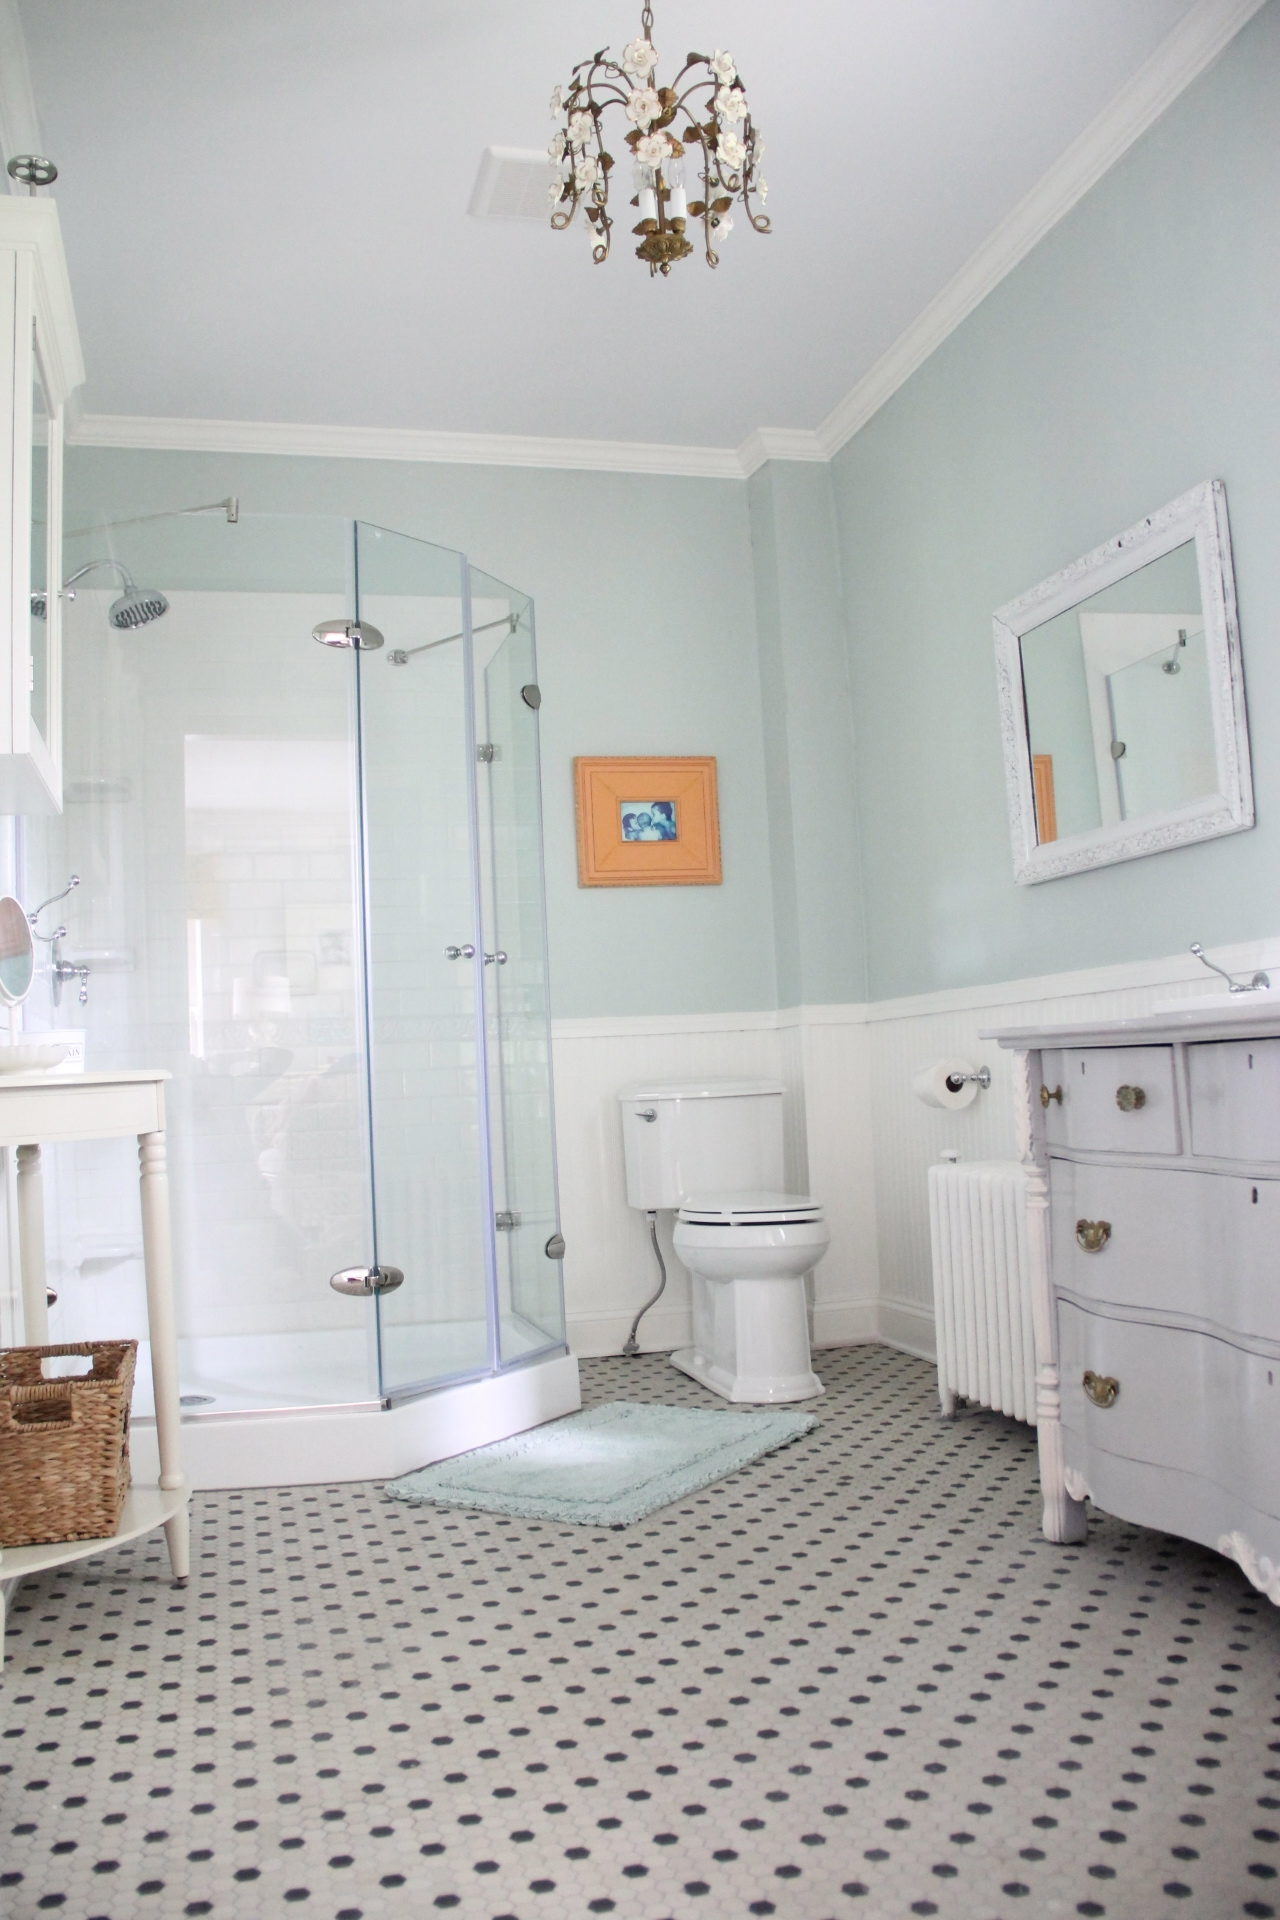 THE KIDS BATHROOM MAKEOVER PHOTOS - My Old Country House